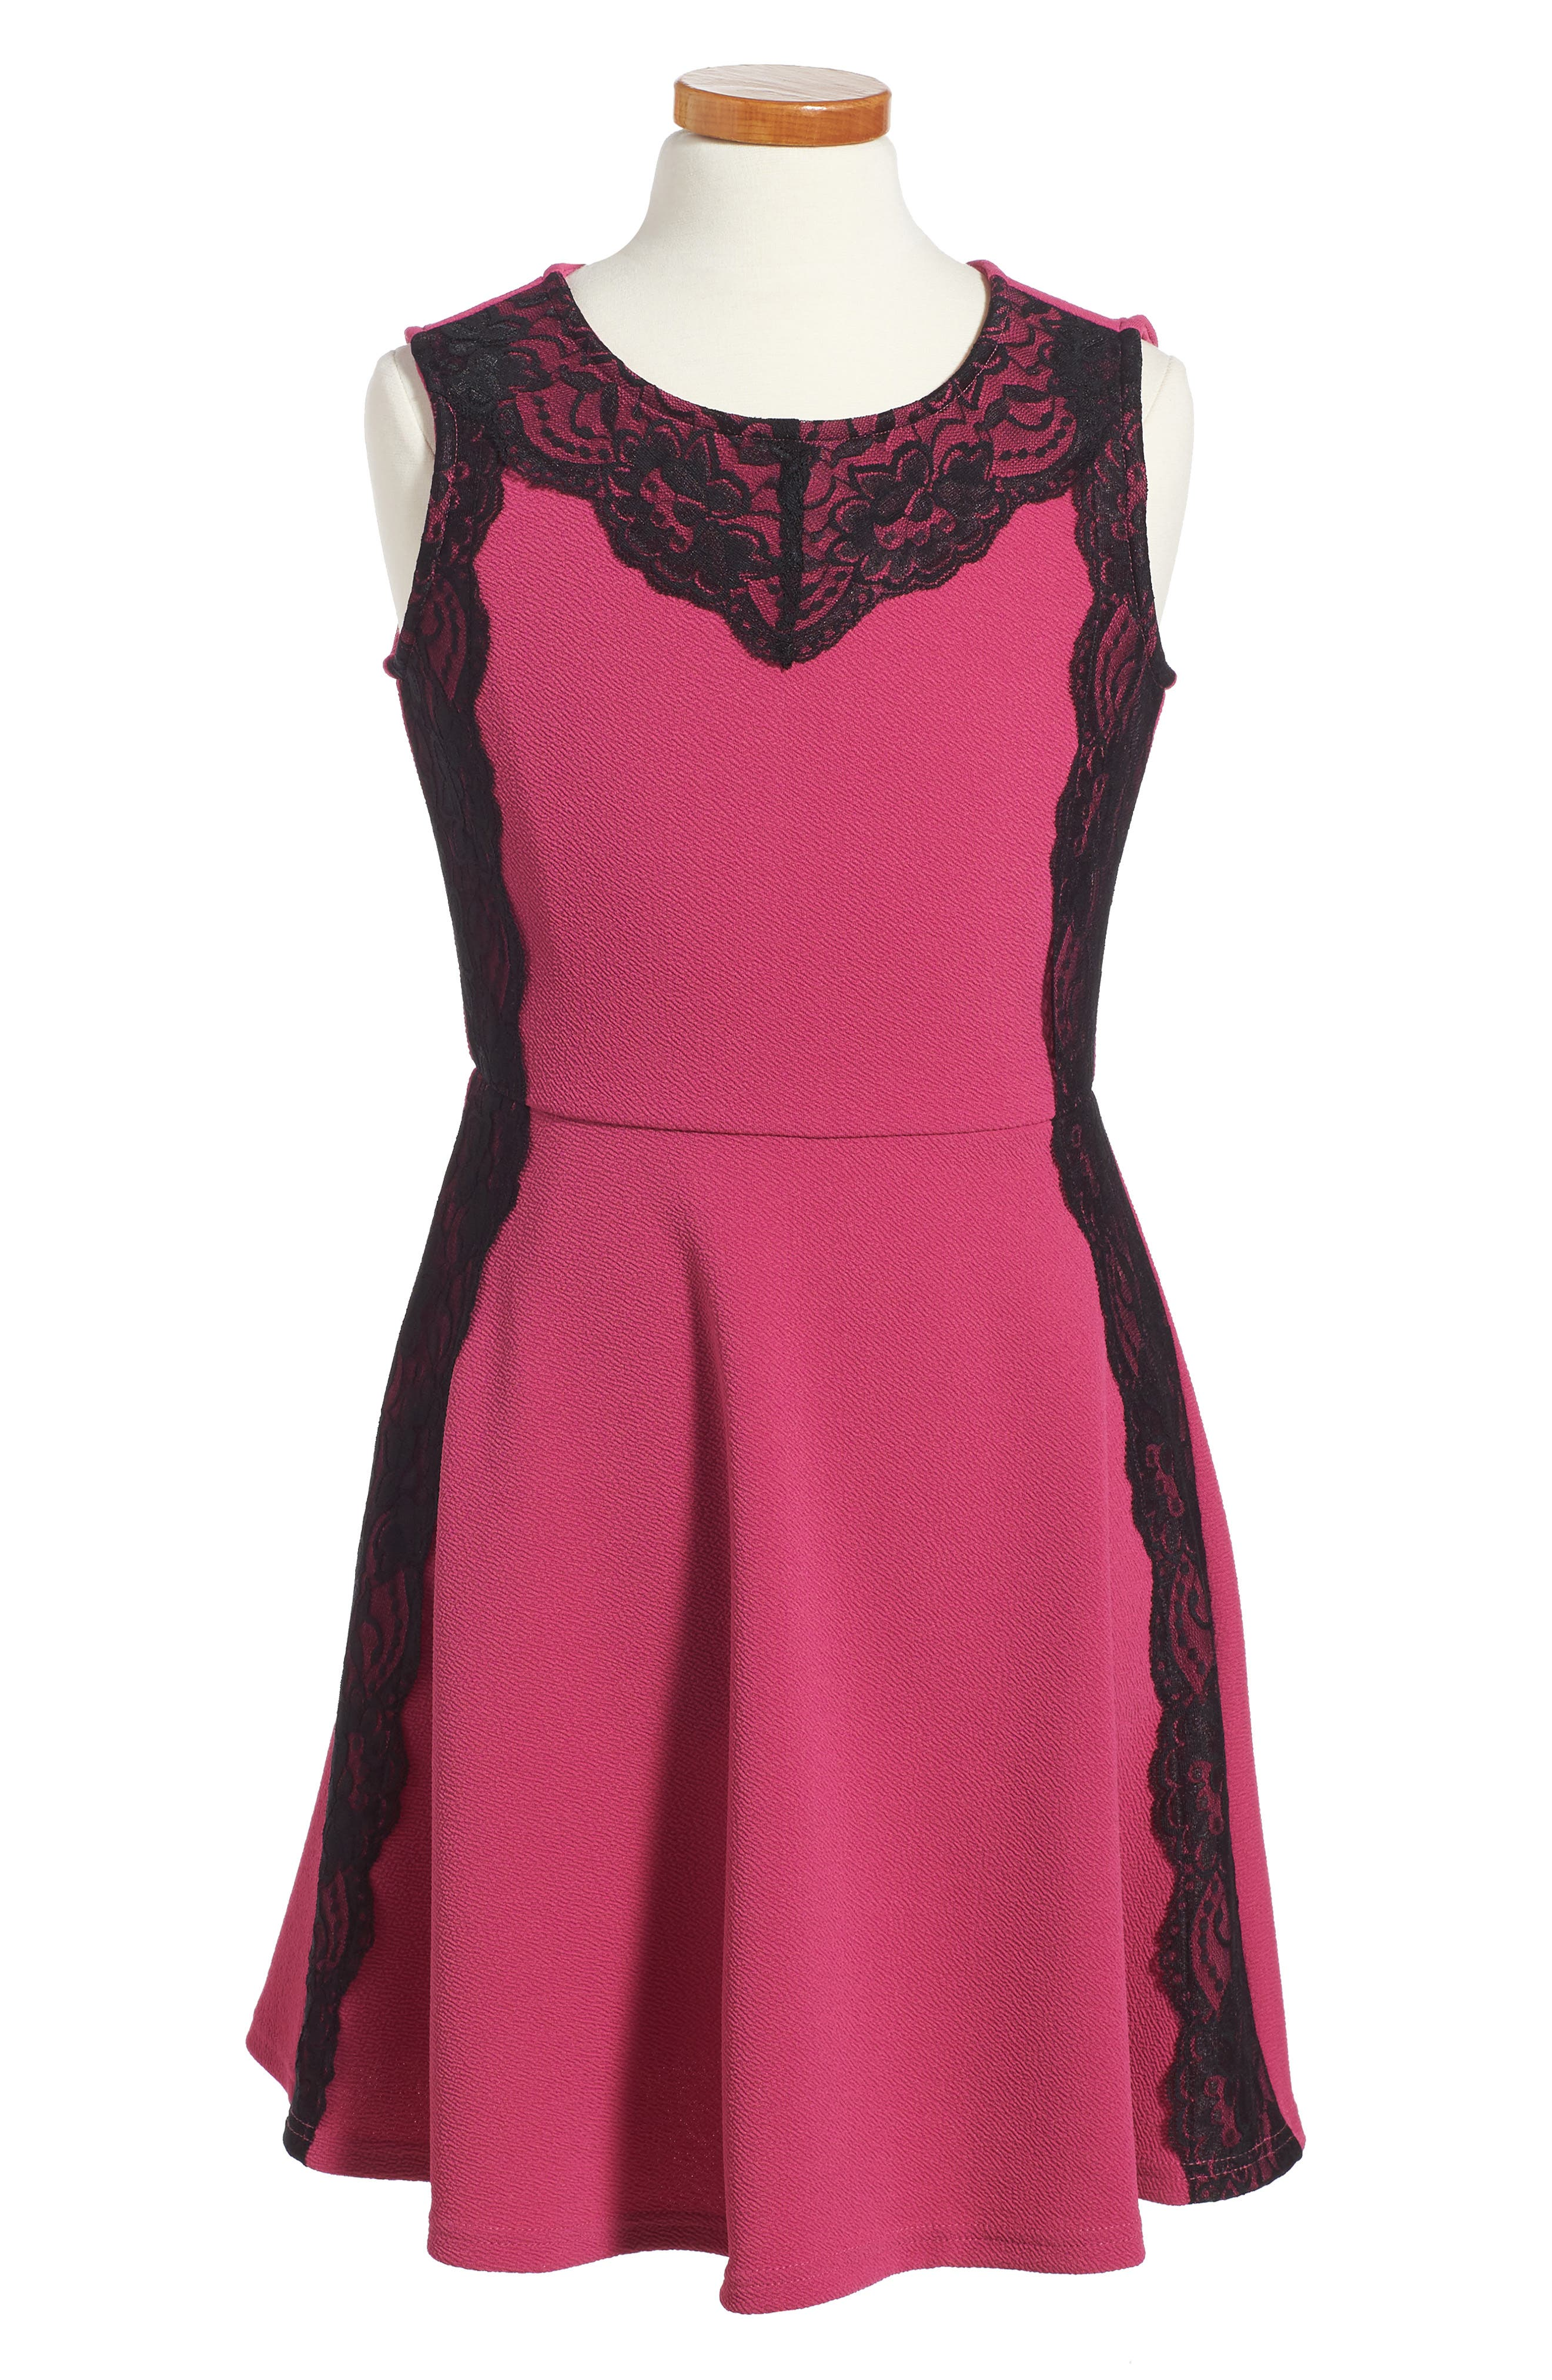 Alternate Image 1 Selected - BLUSH by US Angels Lace Trim Piqué Dress (Big Girls)